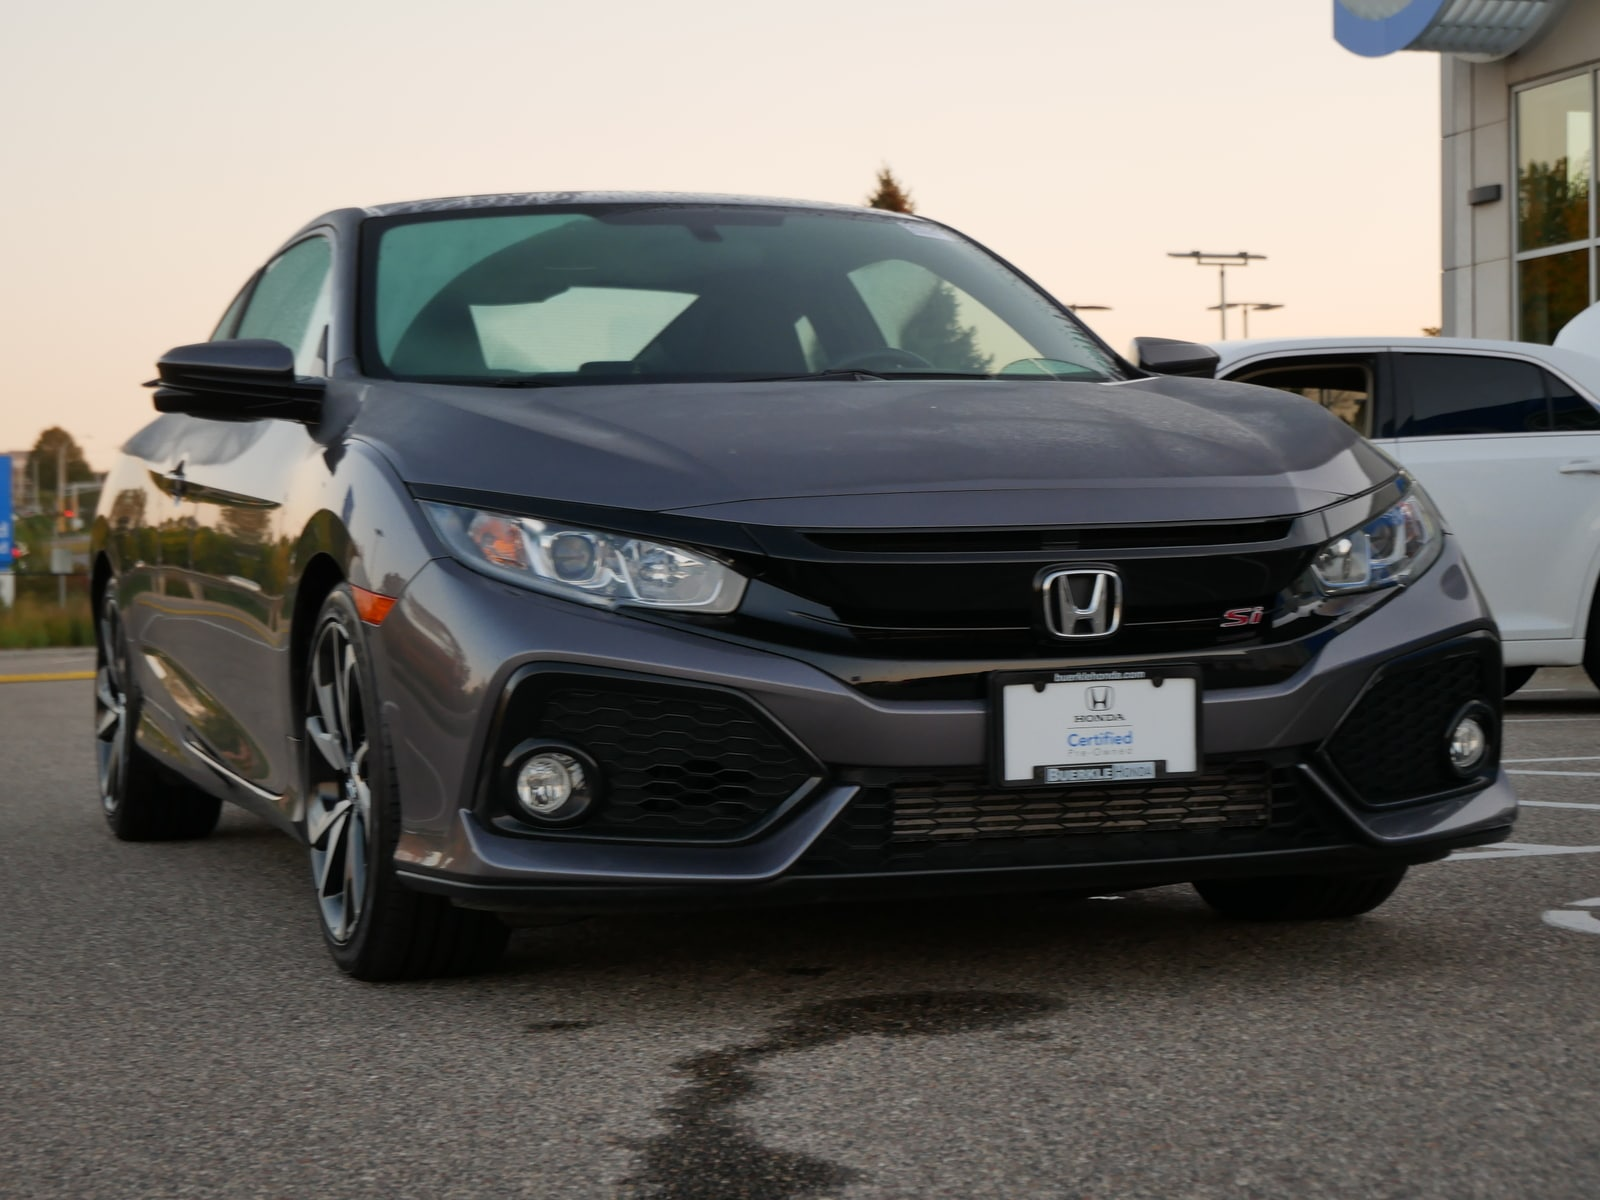 Certified 2019 Honda Civic Si with VIN 2HGFC3A58KH754017 for sale in Saint Paul, Minnesota